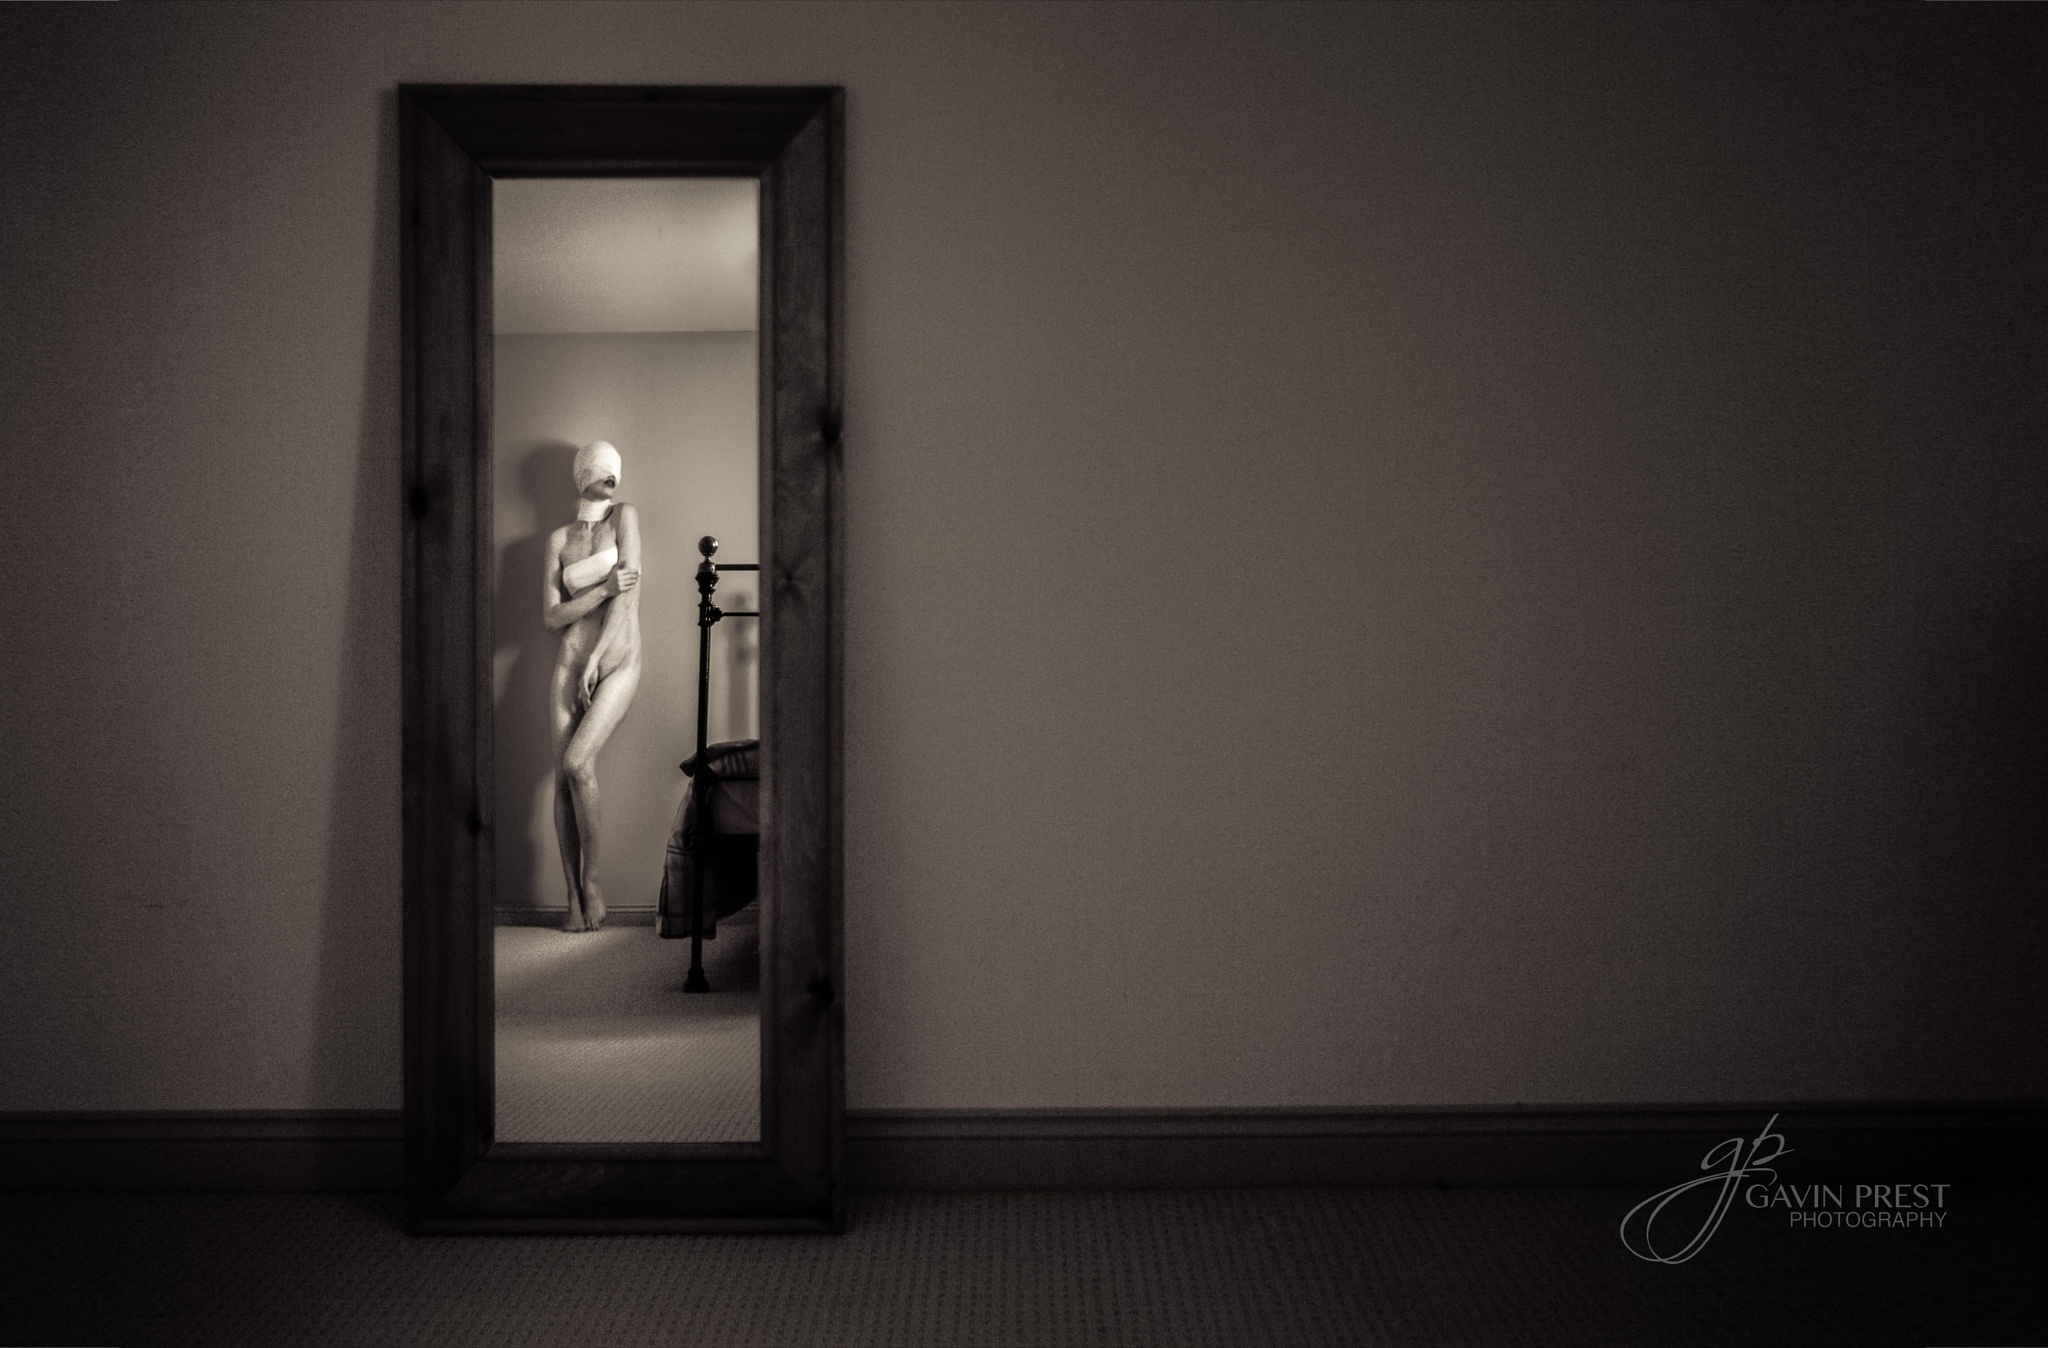 The Patient by Gavin Prest